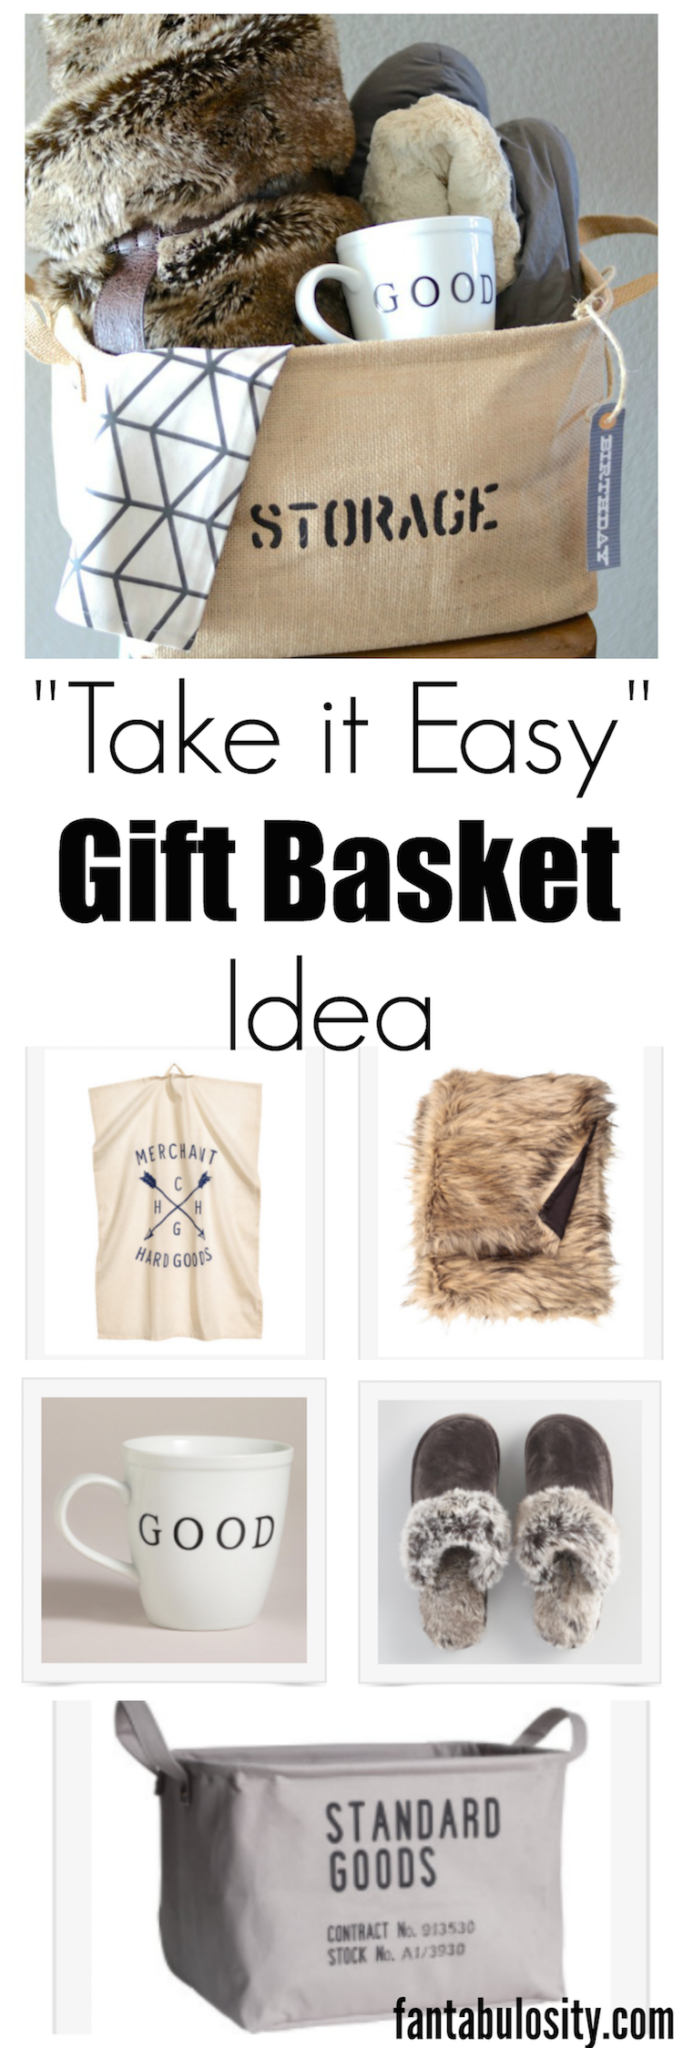 Take it easy relaxation gift basket idea for men or women this take it easy relaxation gift basket idea for men or women this simple gift idea is perfect for any man or woman for any occasion negle Image collections